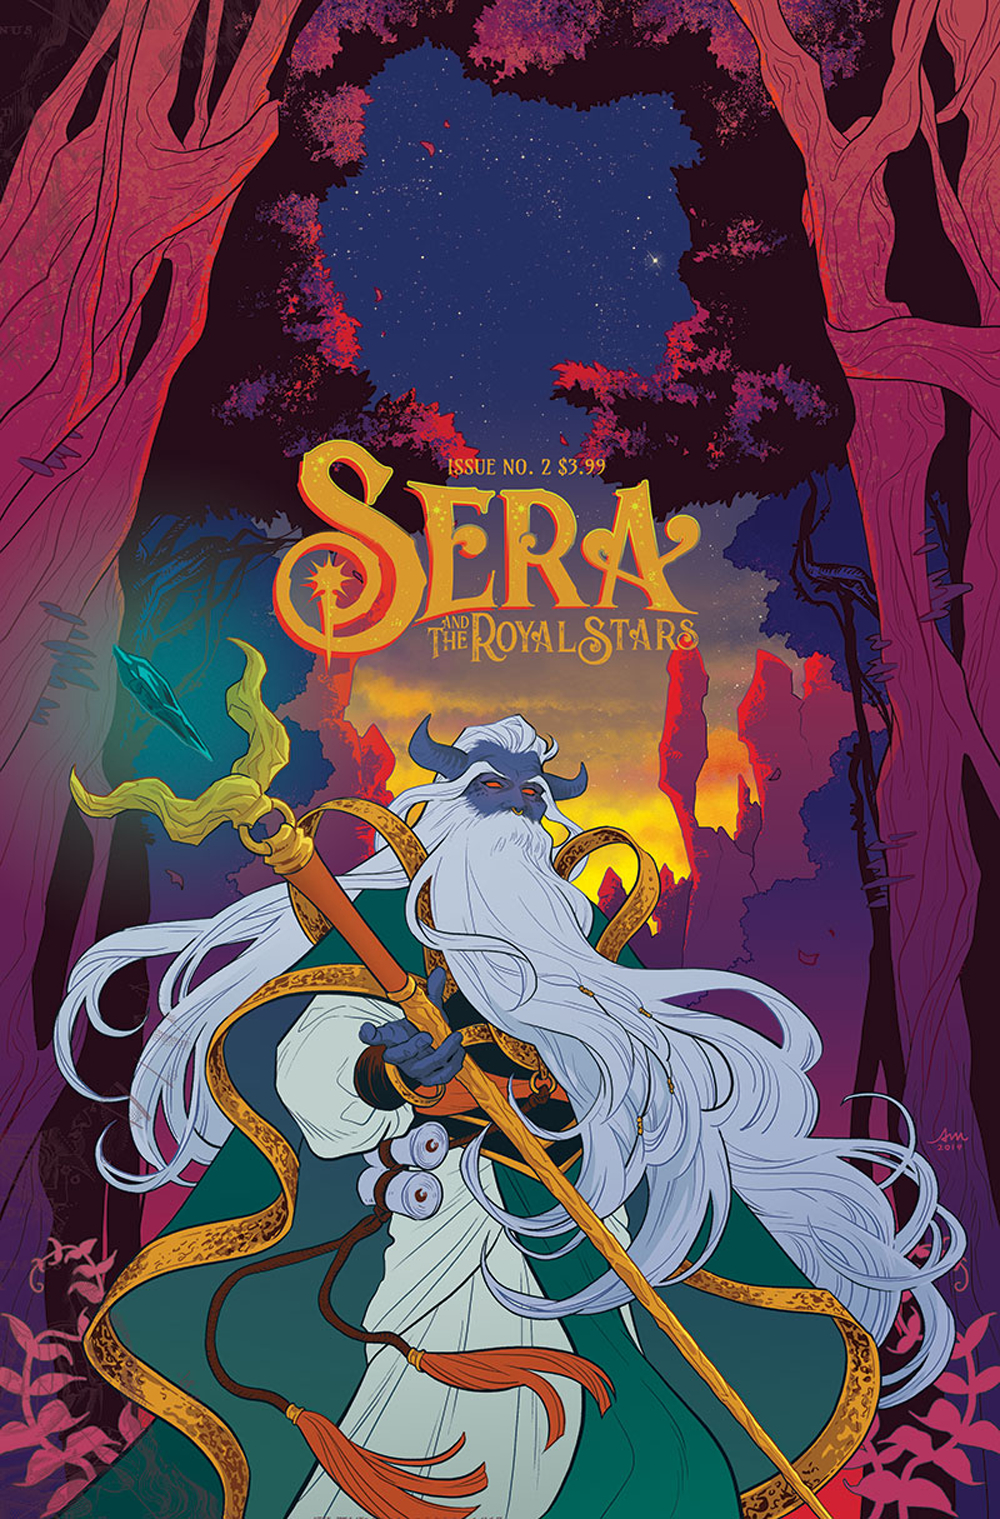 Sera and the Royal Stars #2  is out now.